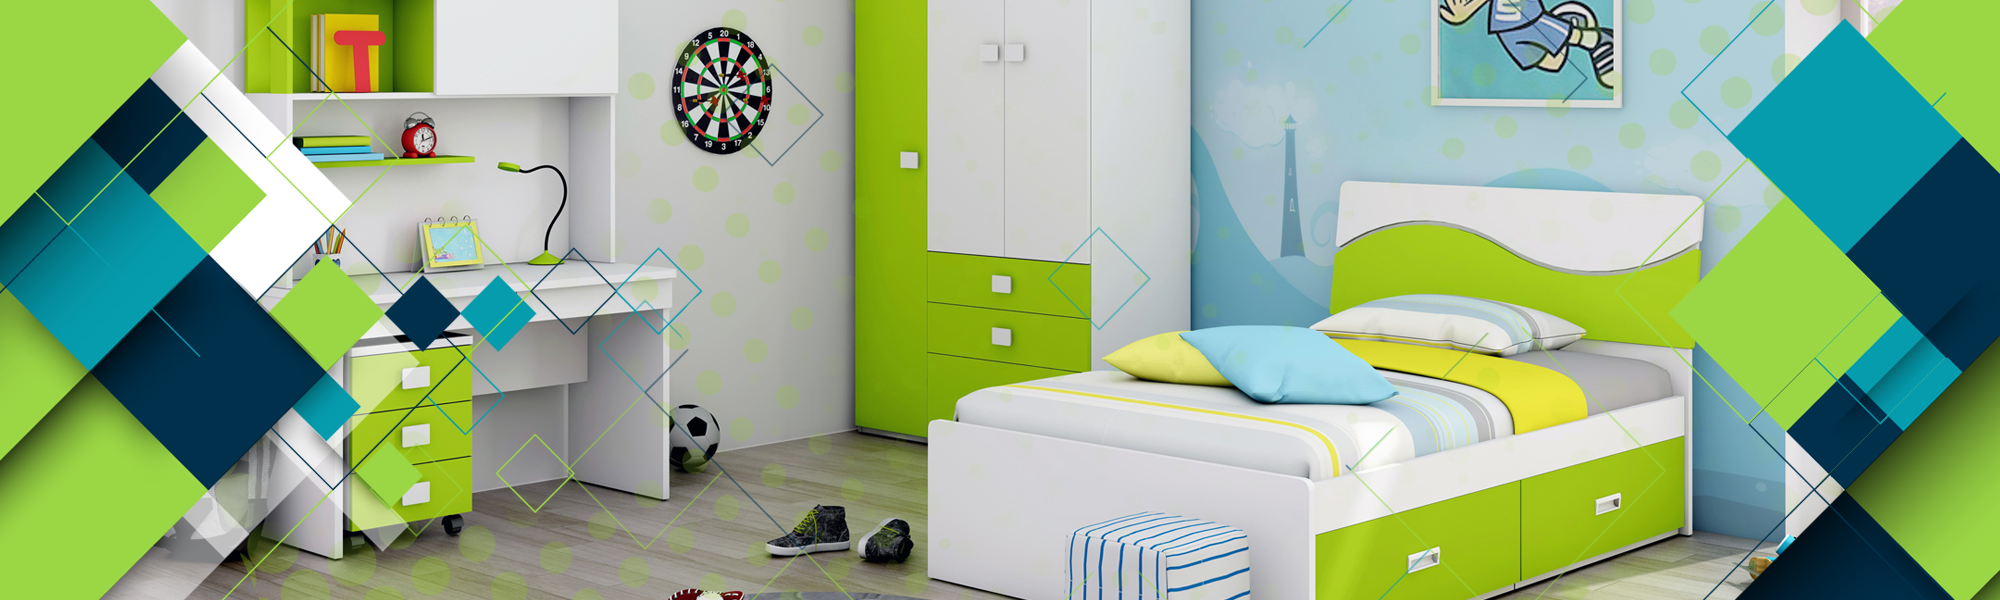 kids room furniture india.  Room With Kids Room Furniture India N